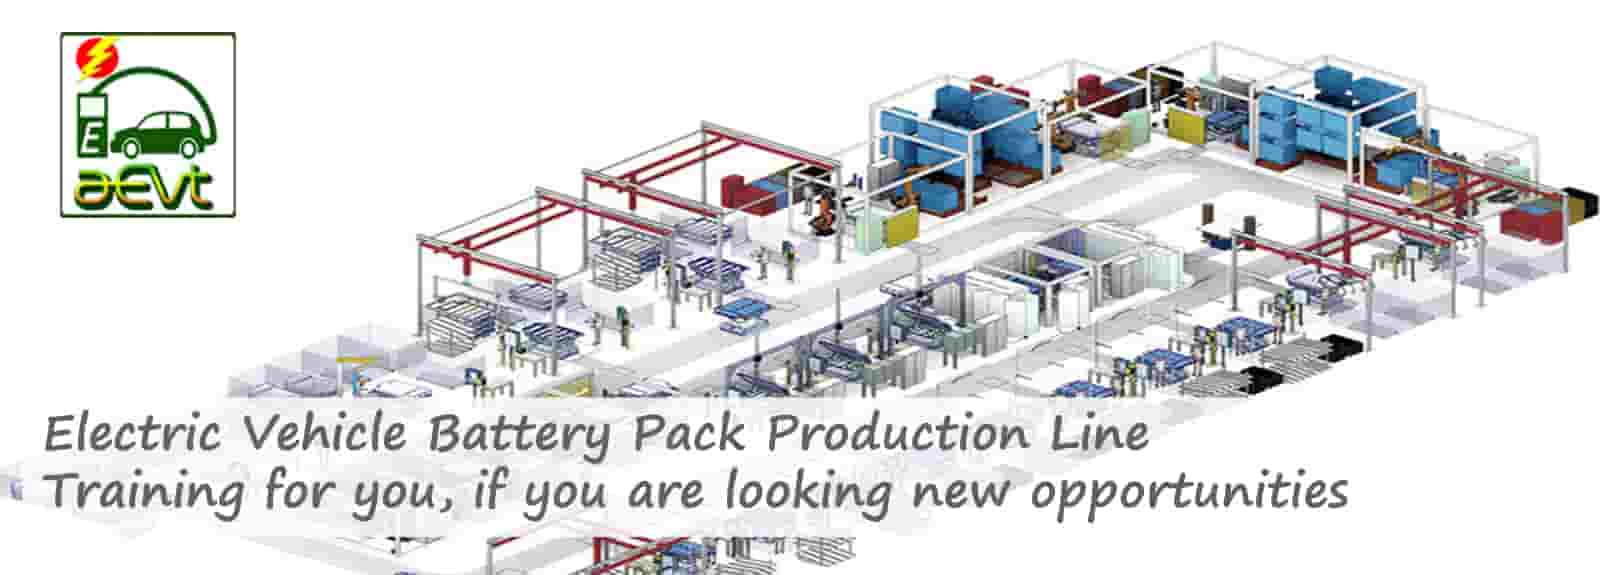 Electric vehicle battery pack production